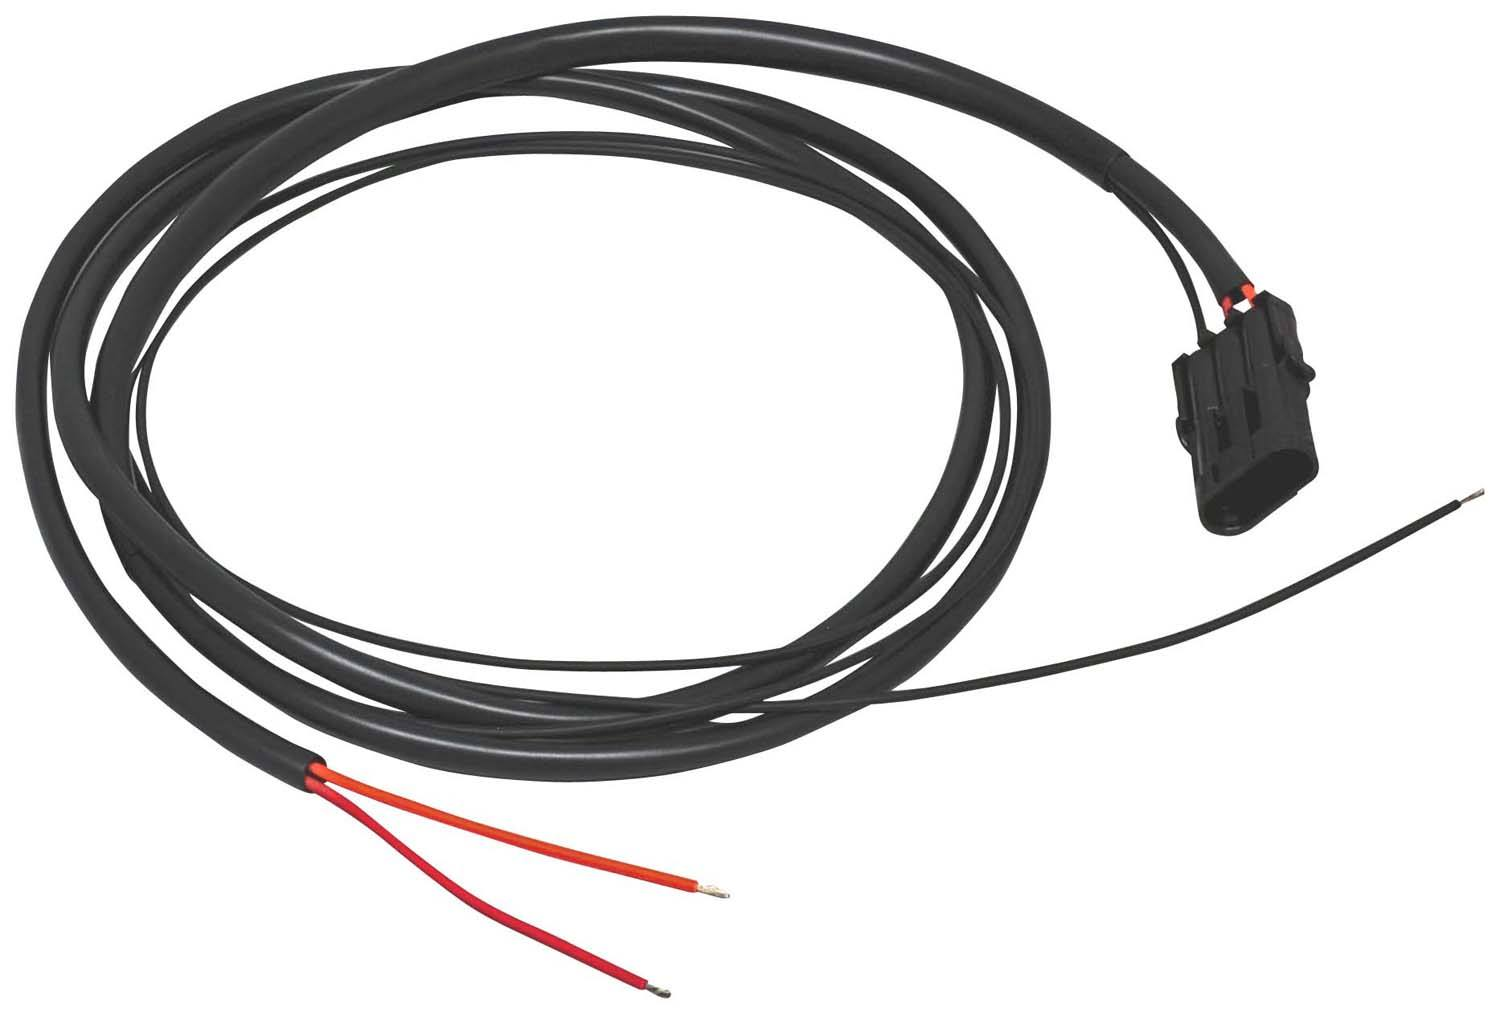 msd 8860 wiring harness wiring diagram home msd 8860 wiring harness wiring diagram centre msd 8860 wiring harness